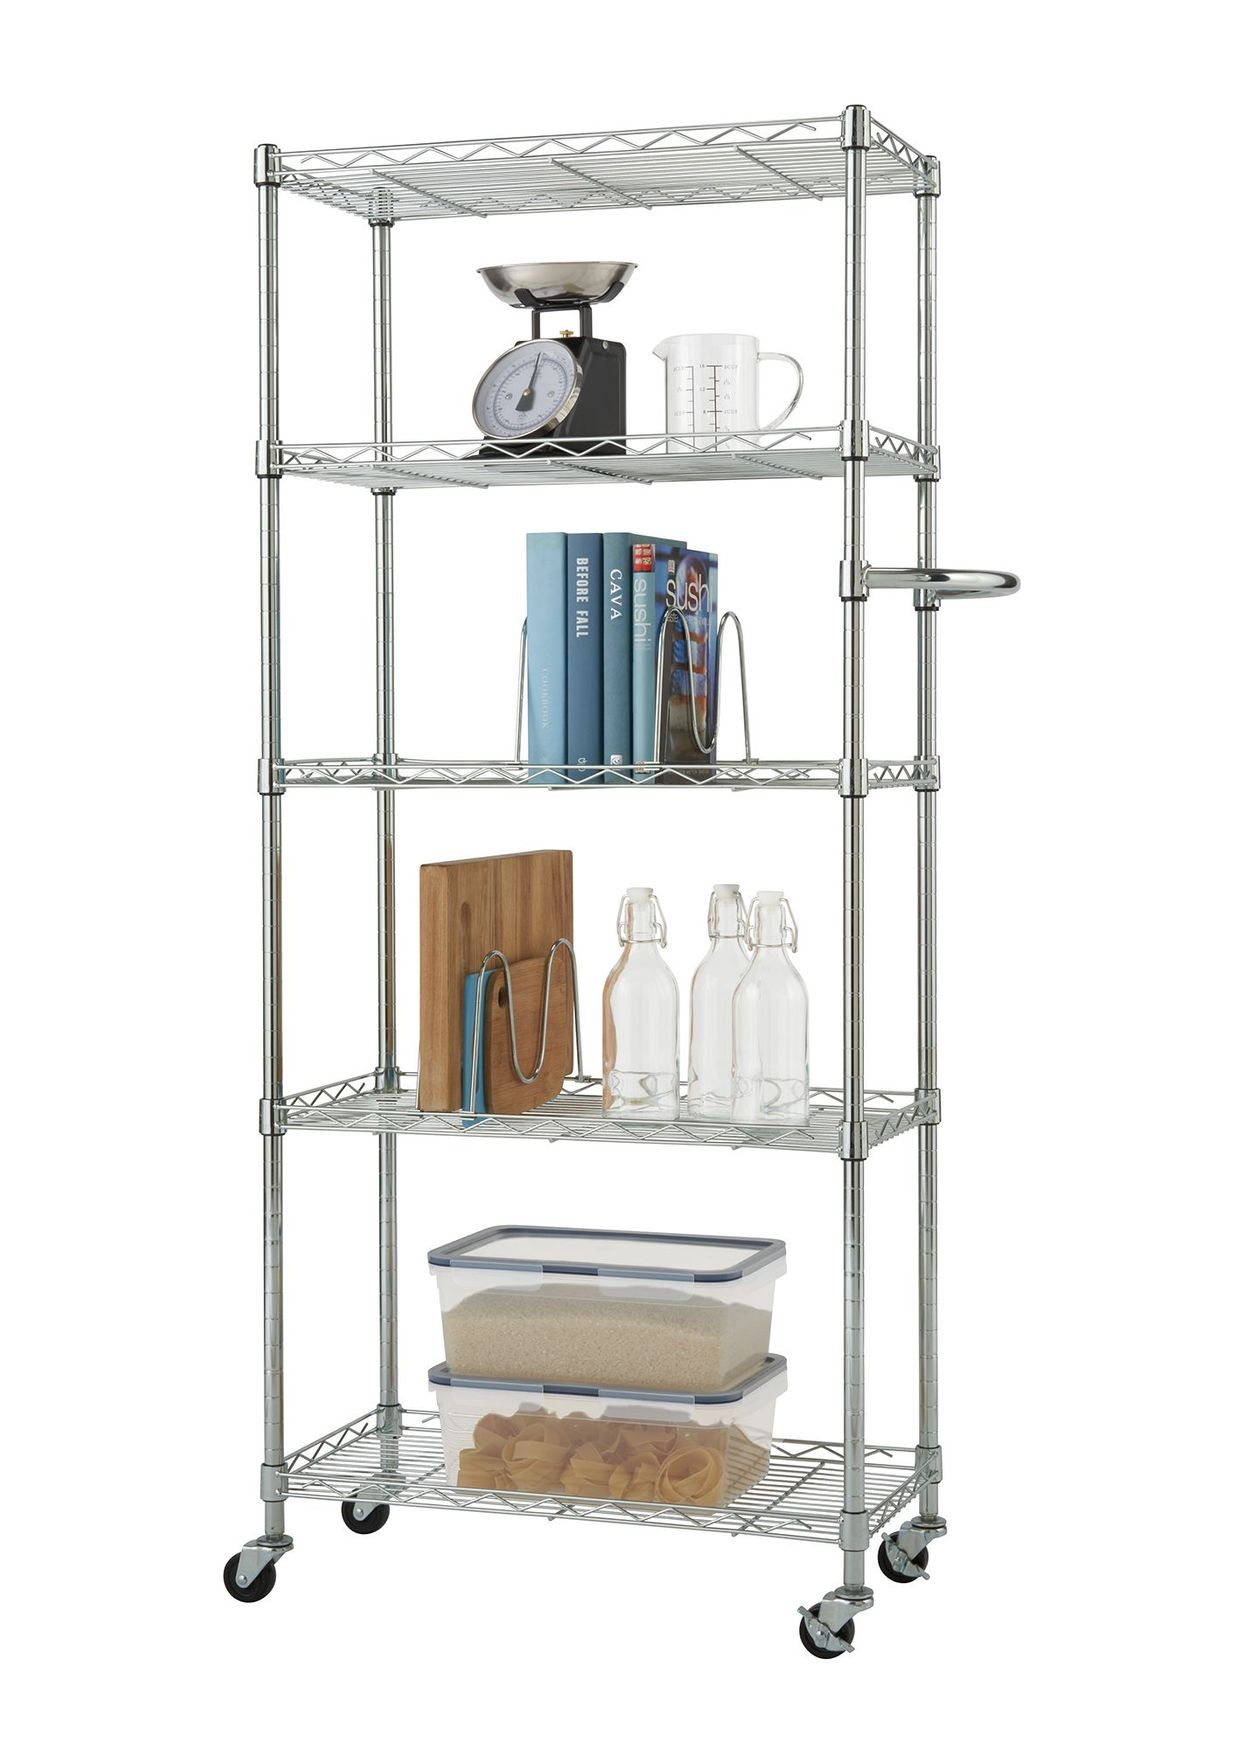 EcoStorage™ Chrome pantry rack with props